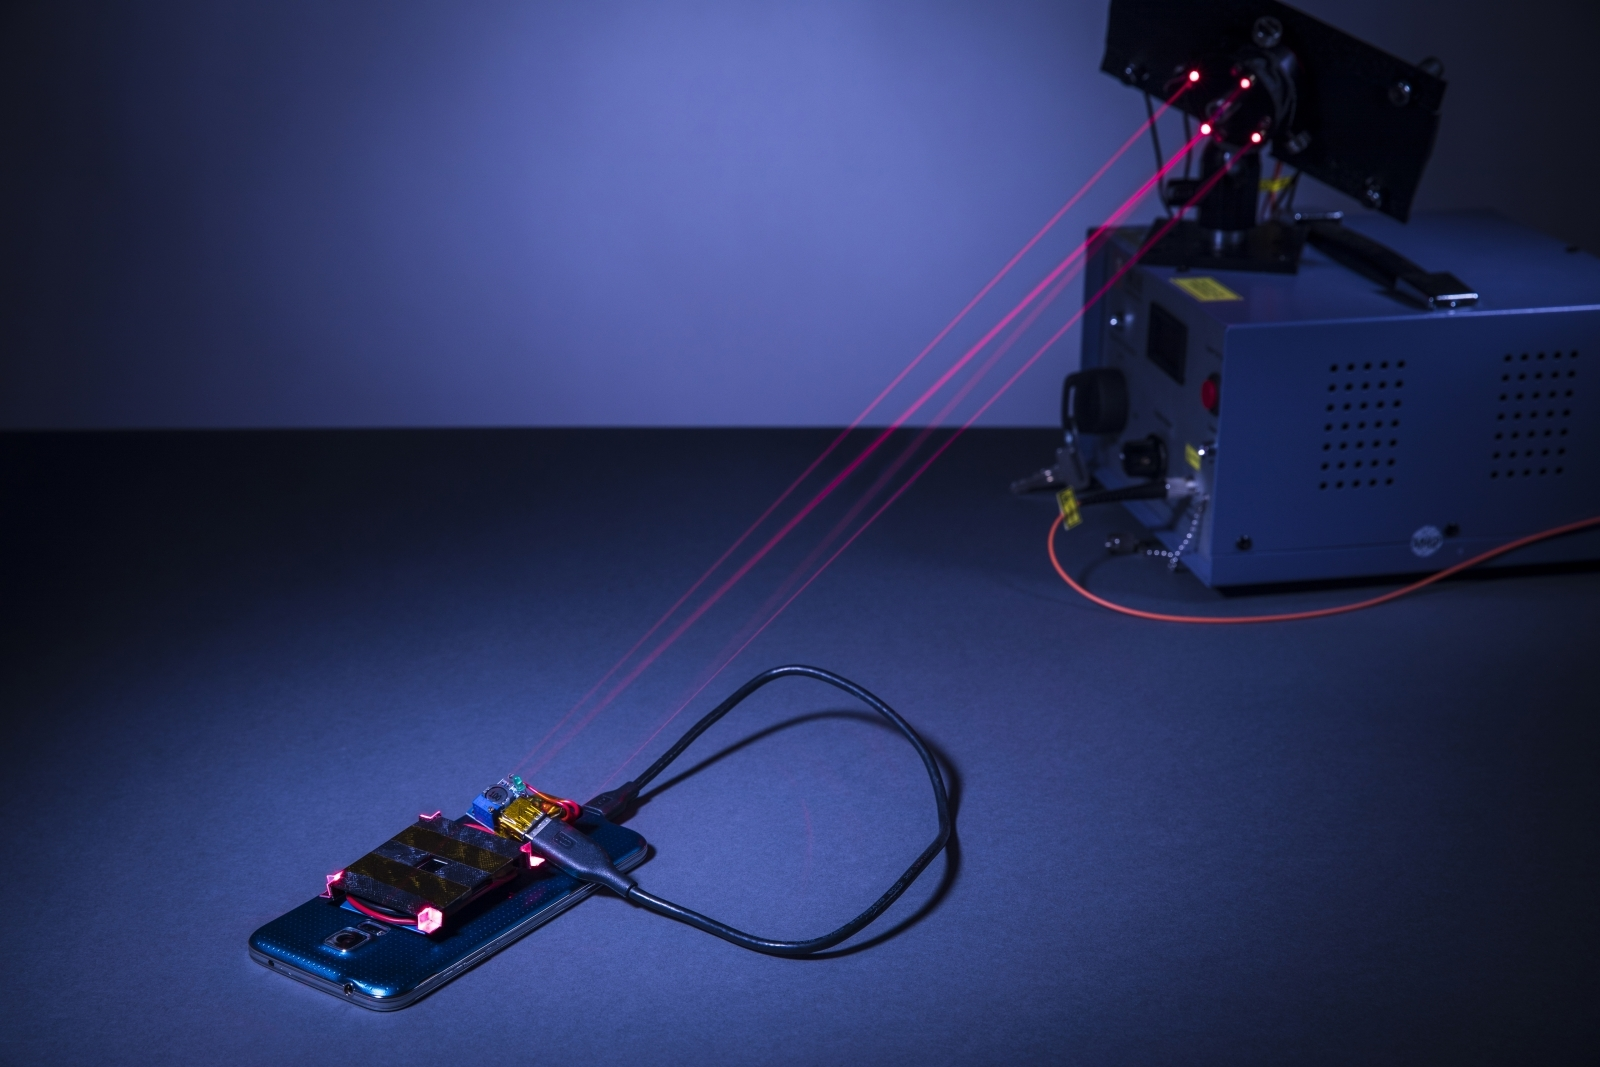 Smartphone charged through laser beam